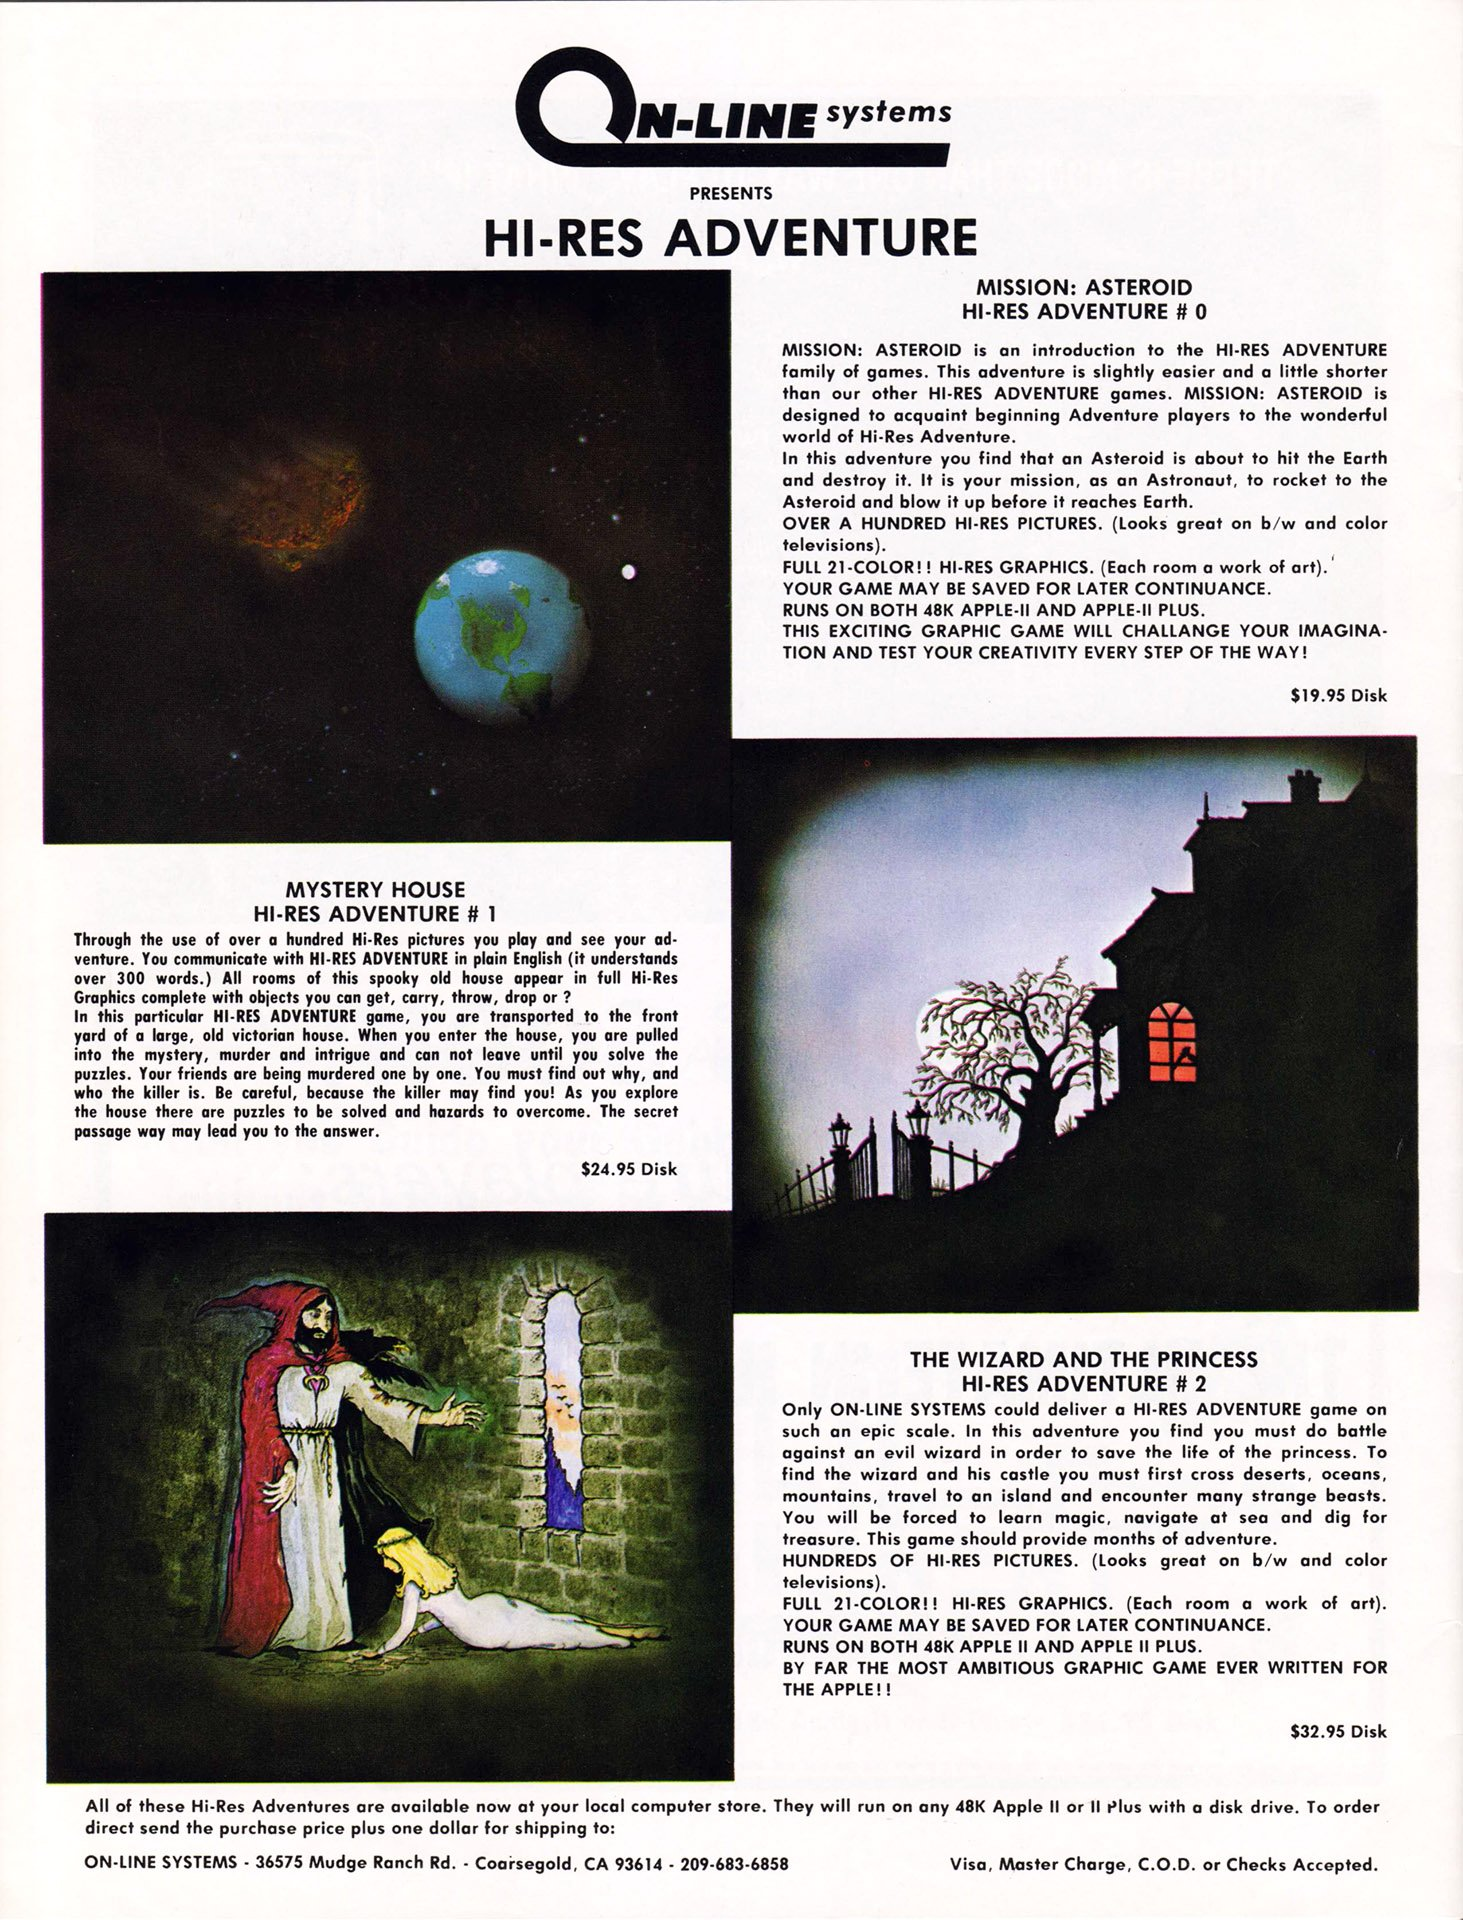 Hi-Res Adventure - Mission: Asteroid, Mystery House, The Wizard and the Princess